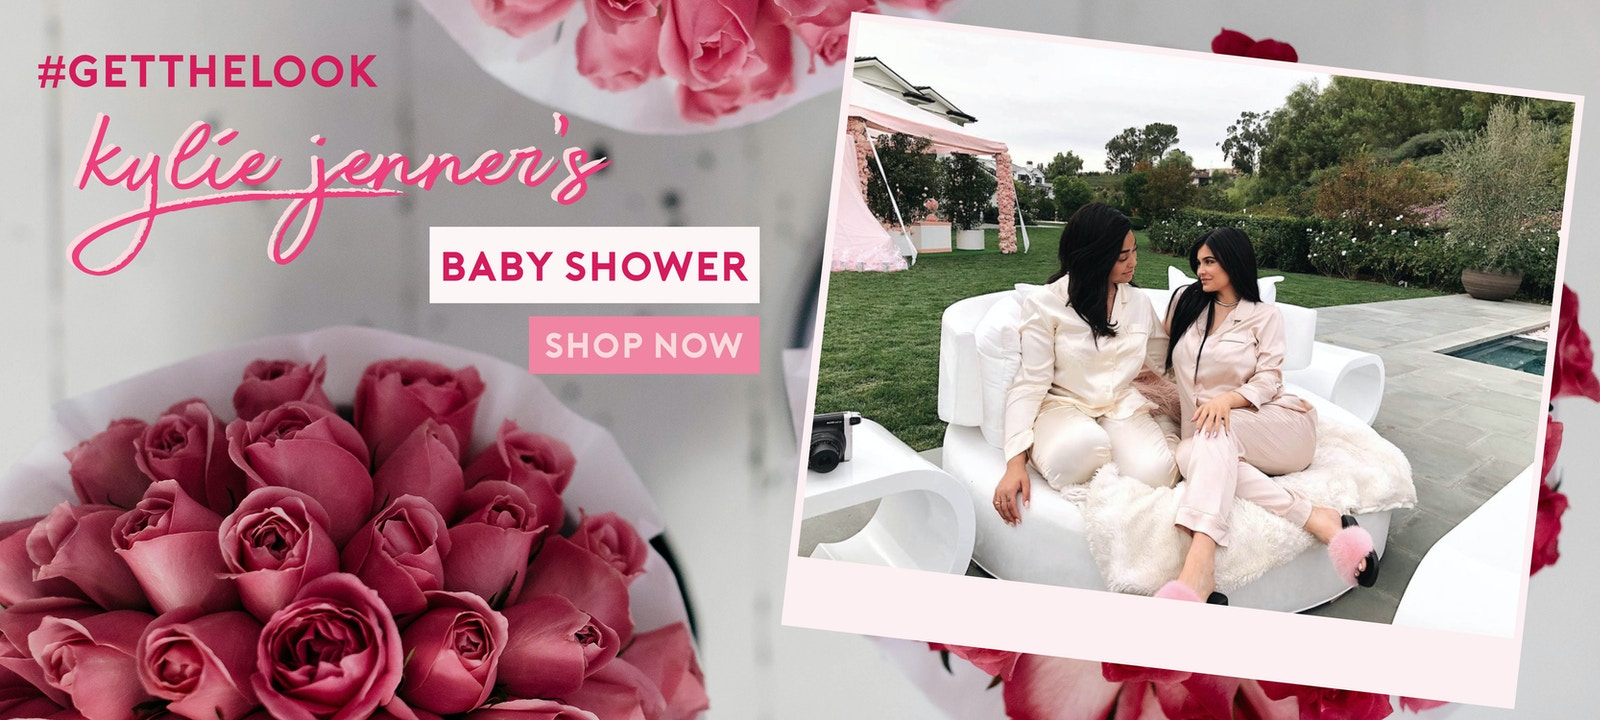 Recreate Kylie's Baby hower